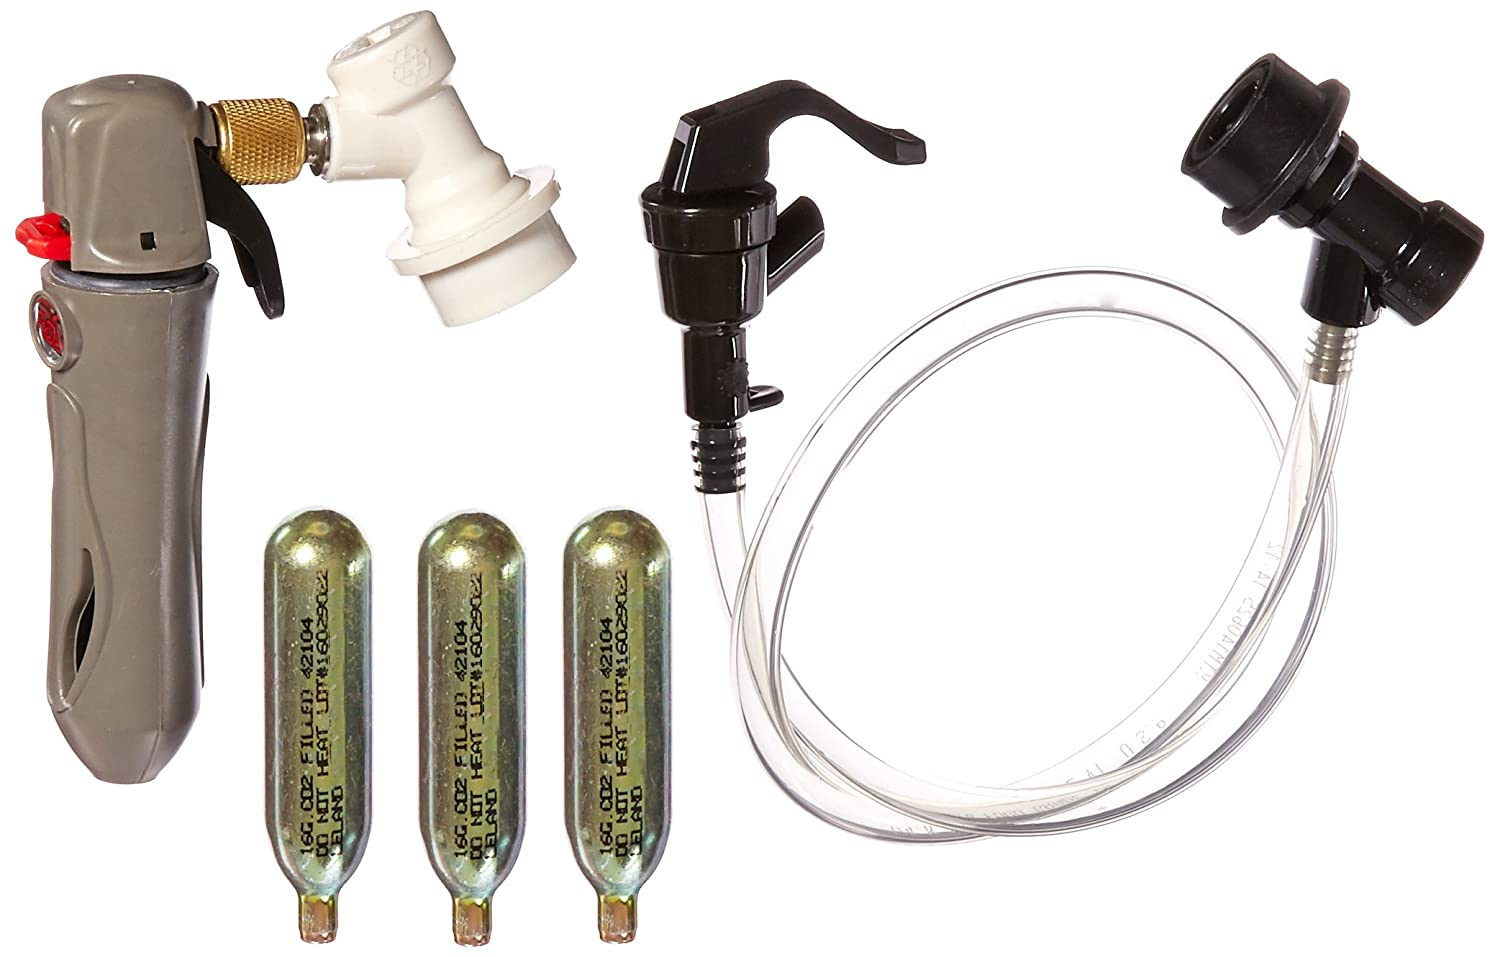 Co2 Keg Charger with Ball Lock Connection, Picnic Faucet Dispenser ...